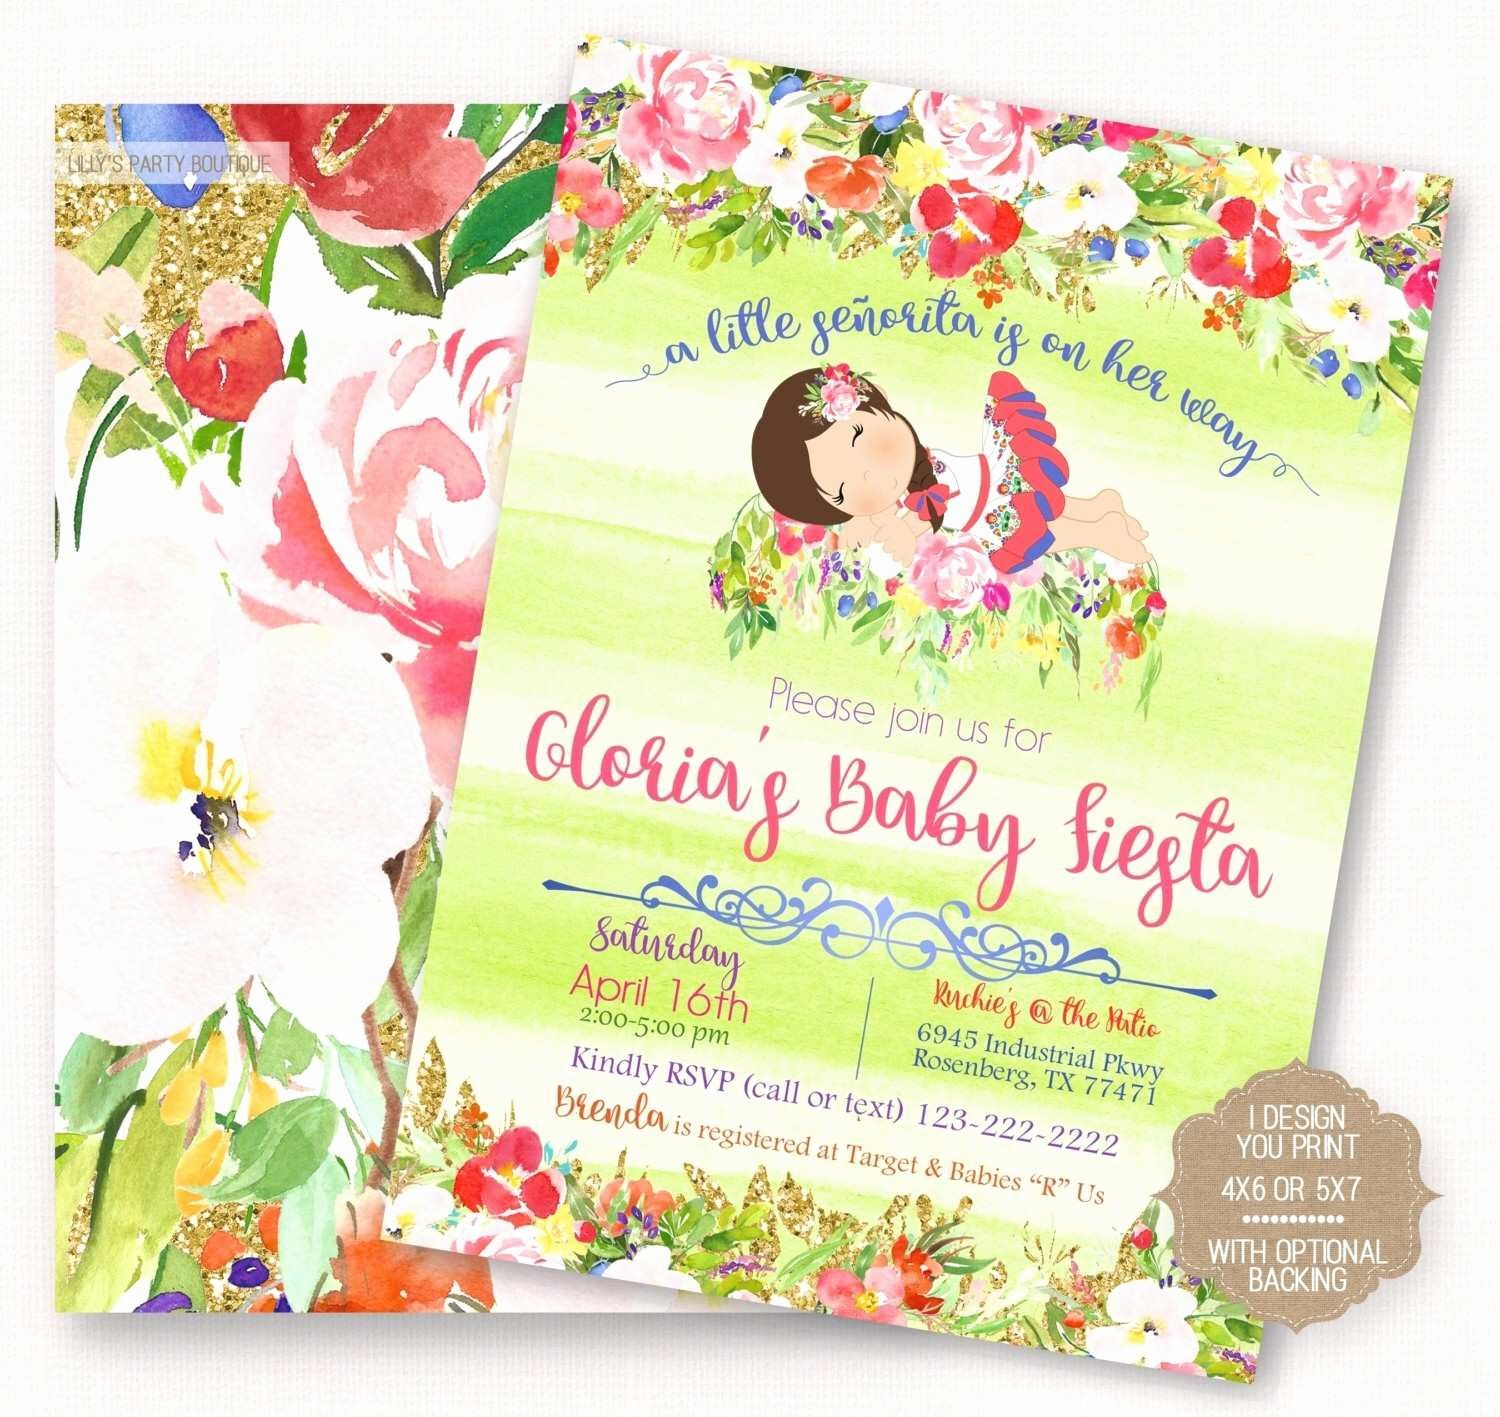 Free Fiesta Invitation Template Beautiful Lovely Free Printable Mexican Fiesta Invitation Templates